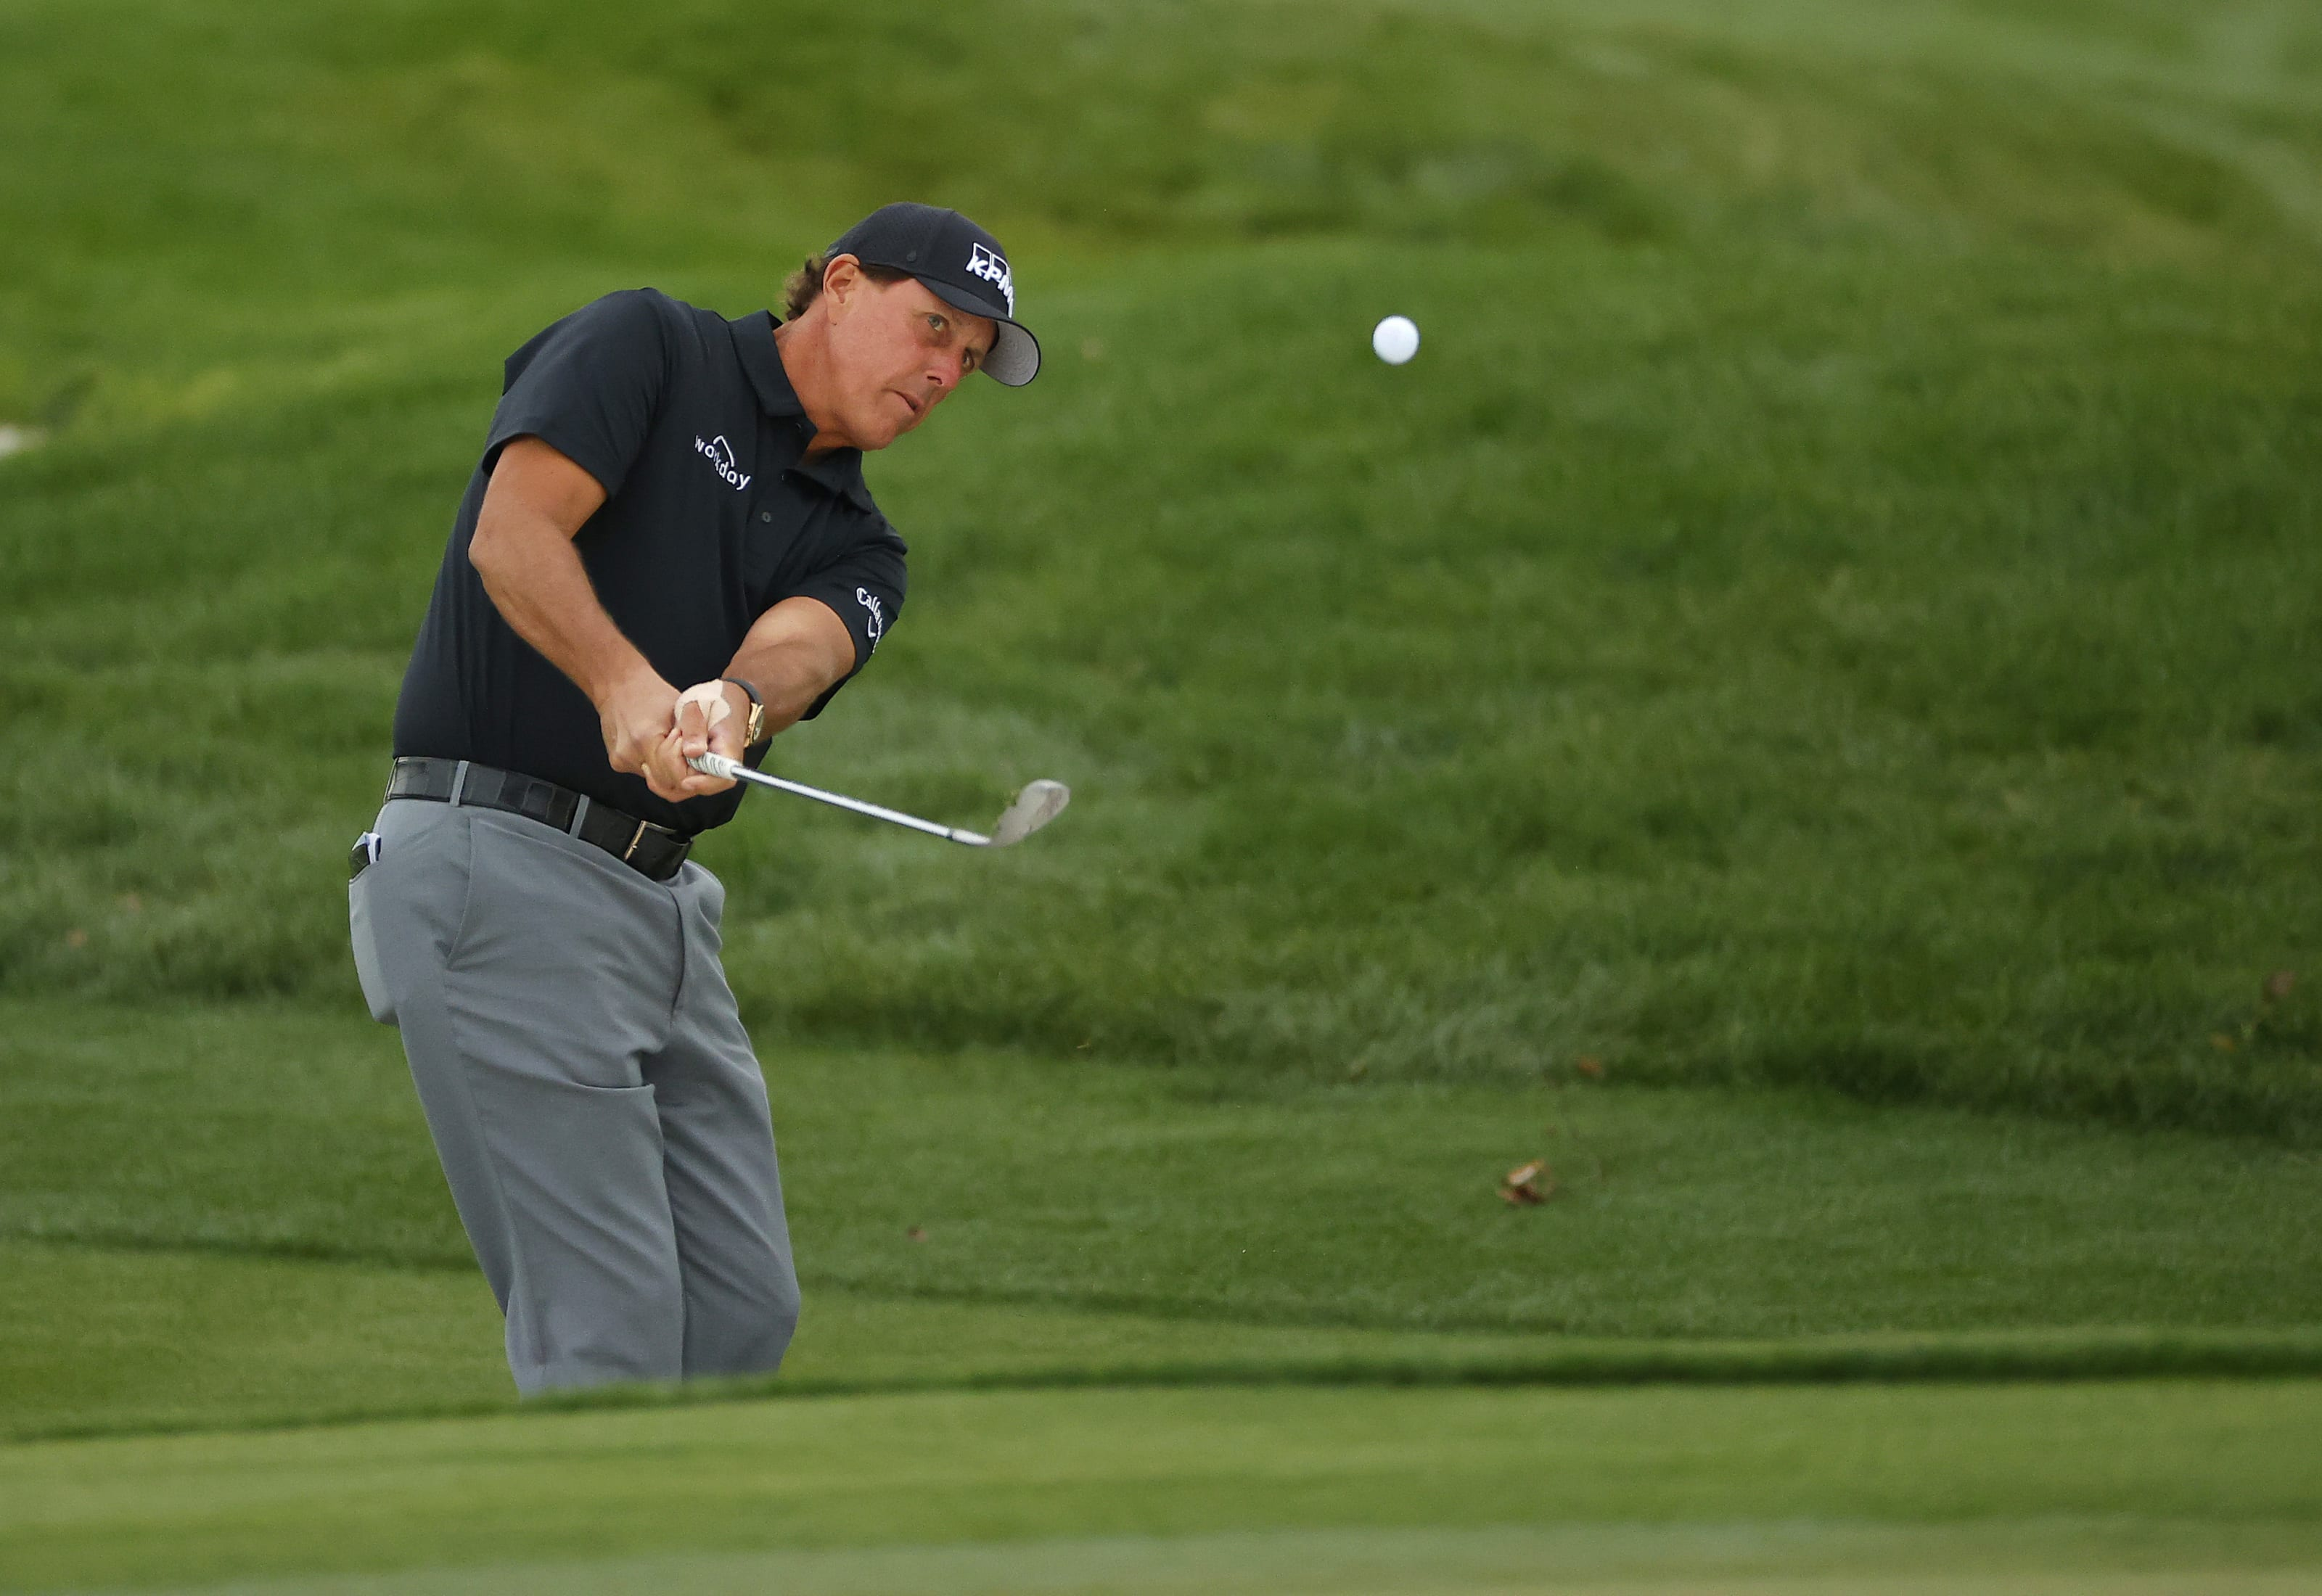 Phil Mickelson is at a crossroads